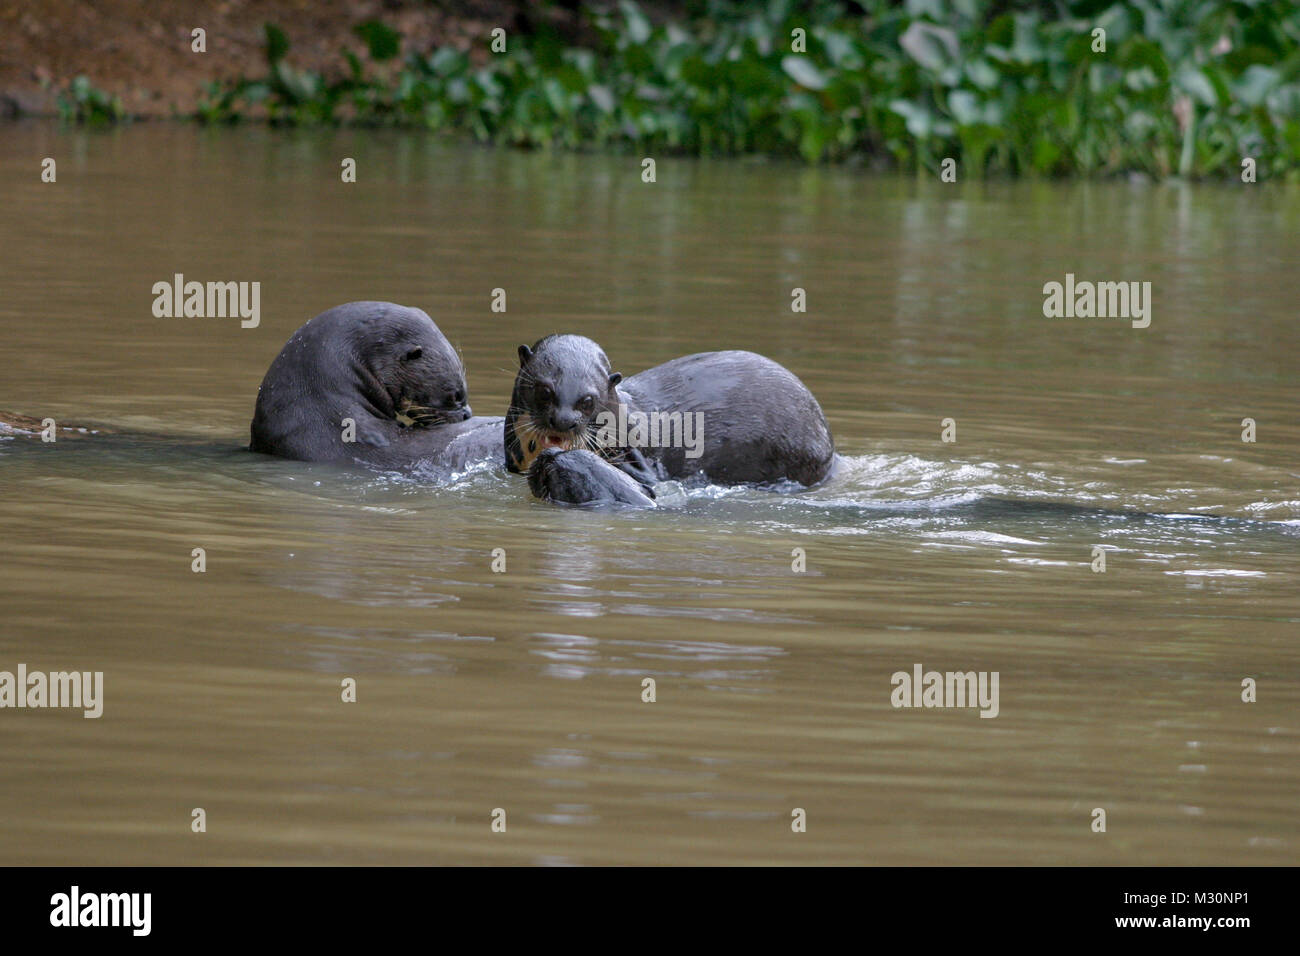 Giant Otters playing in the waters of the Pantanal,  Mato Grosso Do Sul region of Brazil - Stock Image